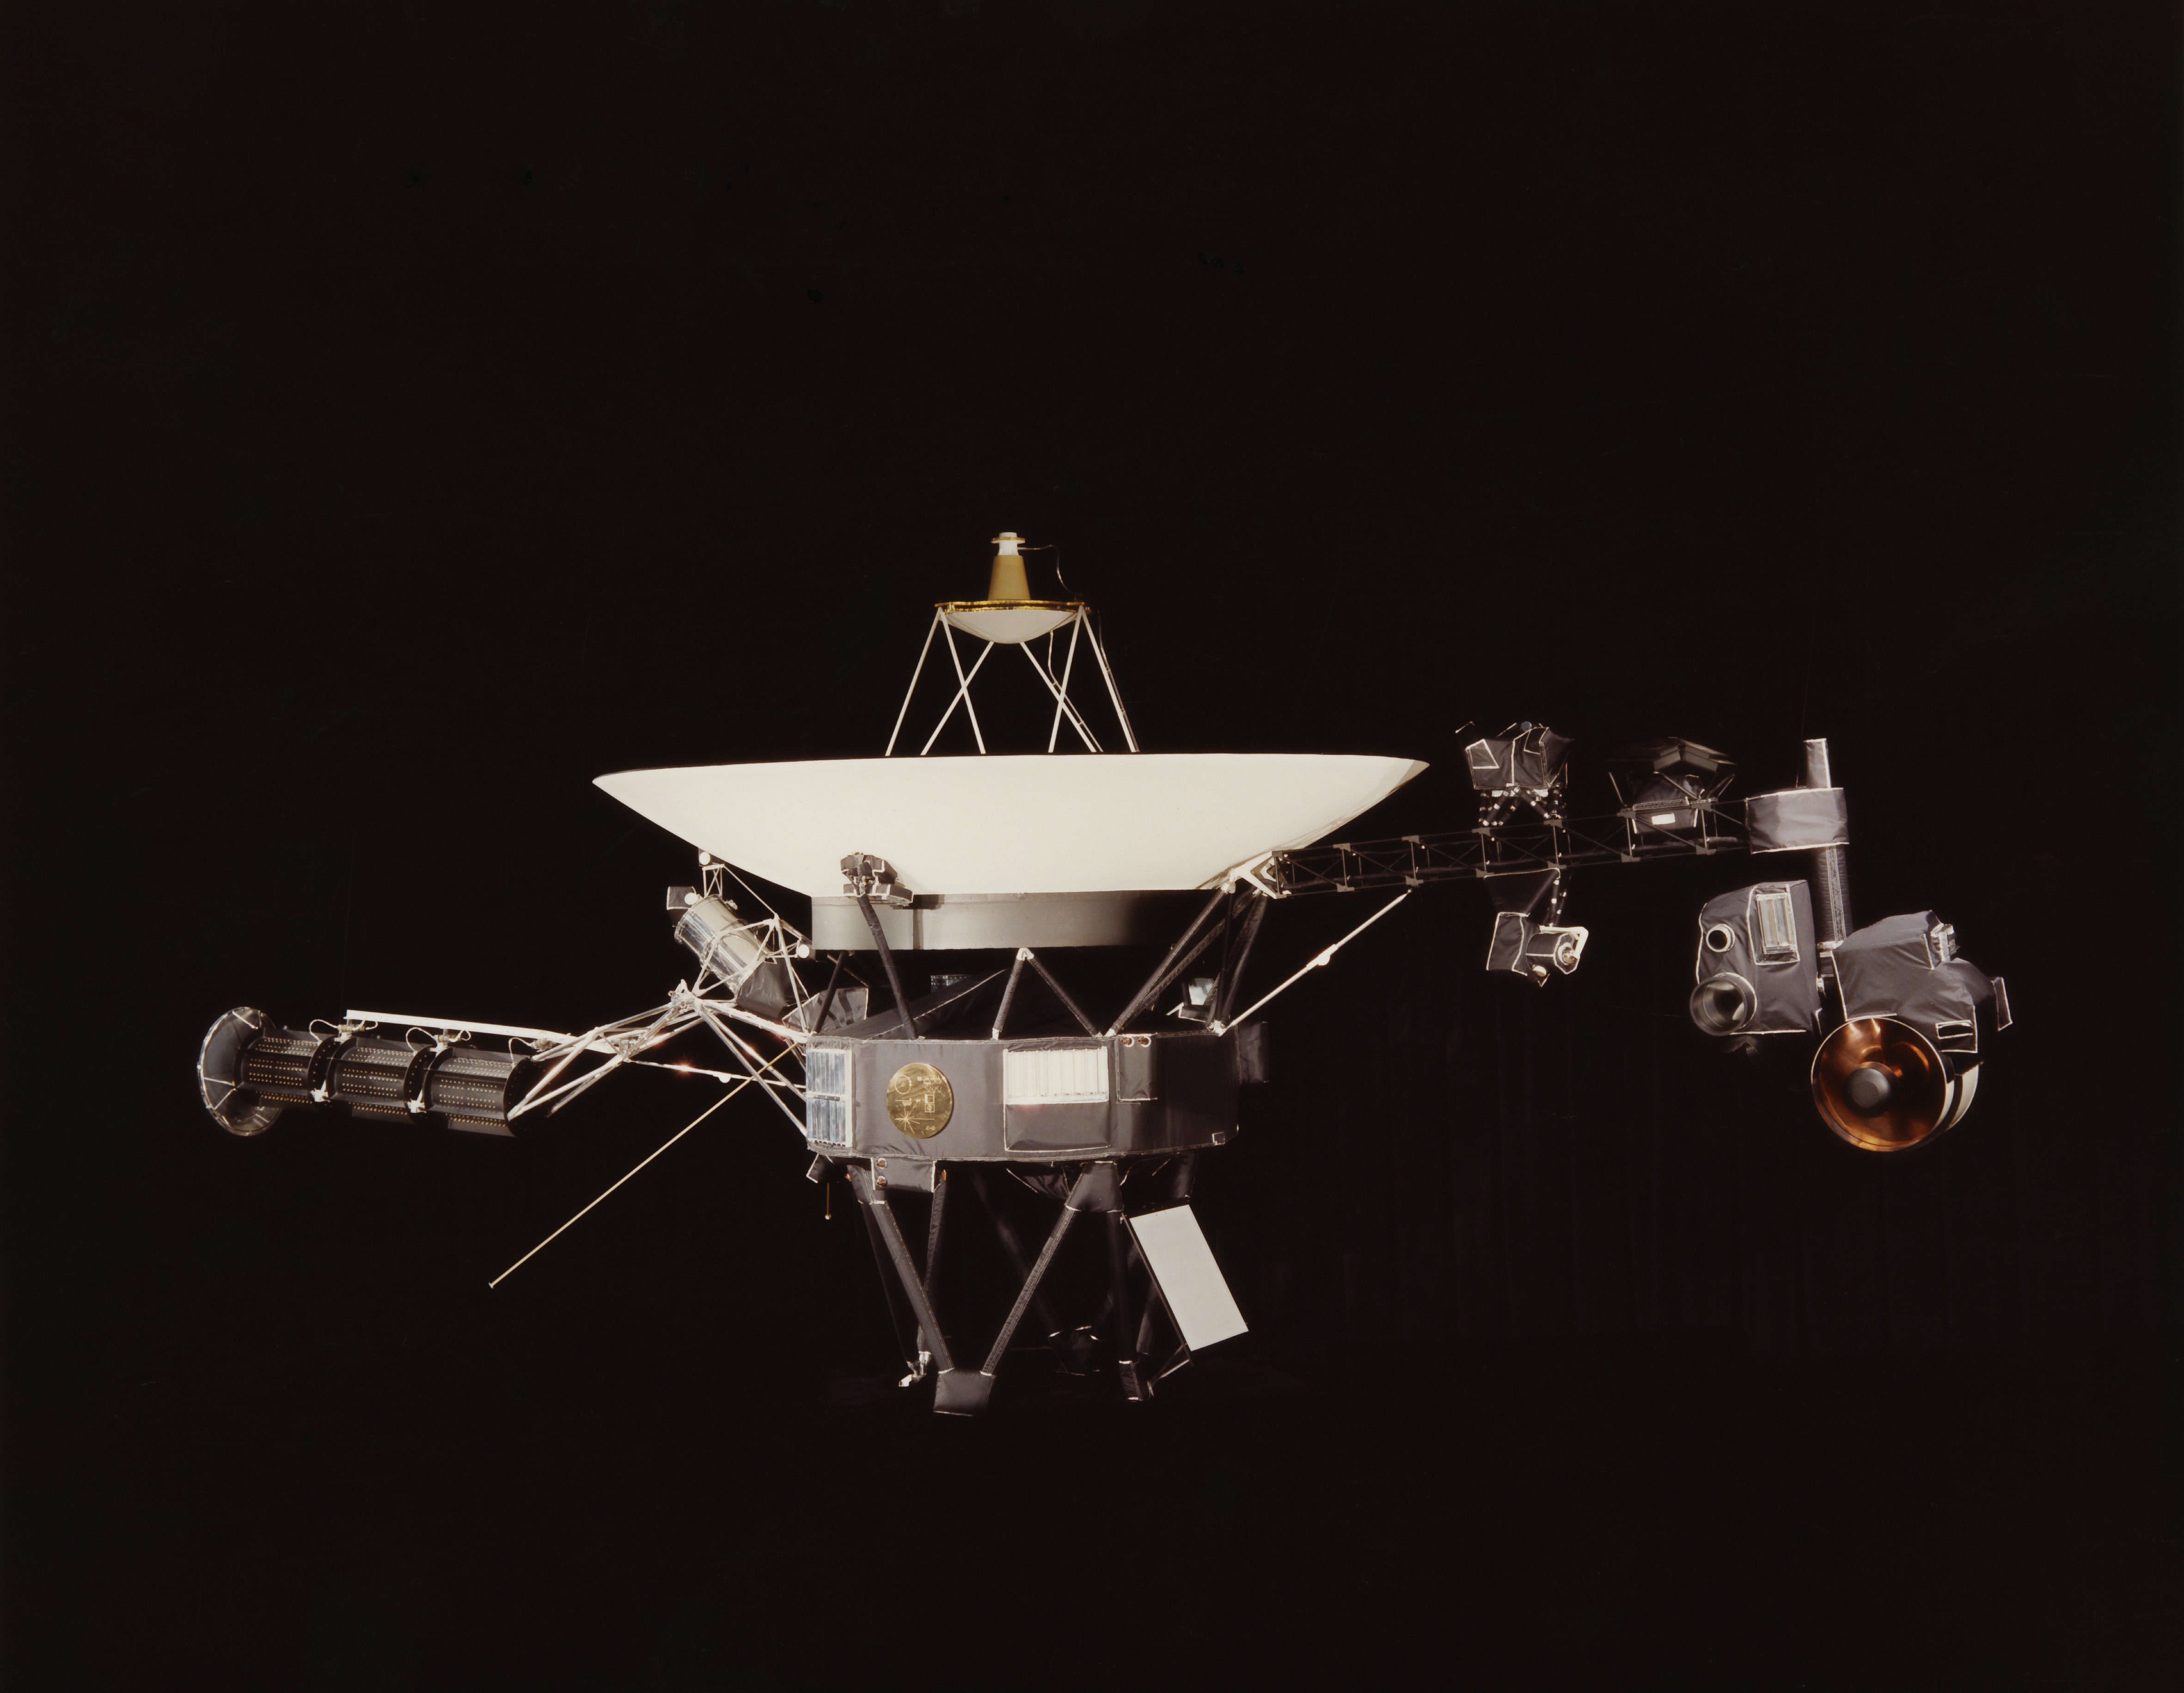 Voyager 1 and its identical sister craft Voyager 2 were launched in 1977 to study the outer Solar System and eventually interstellar space.